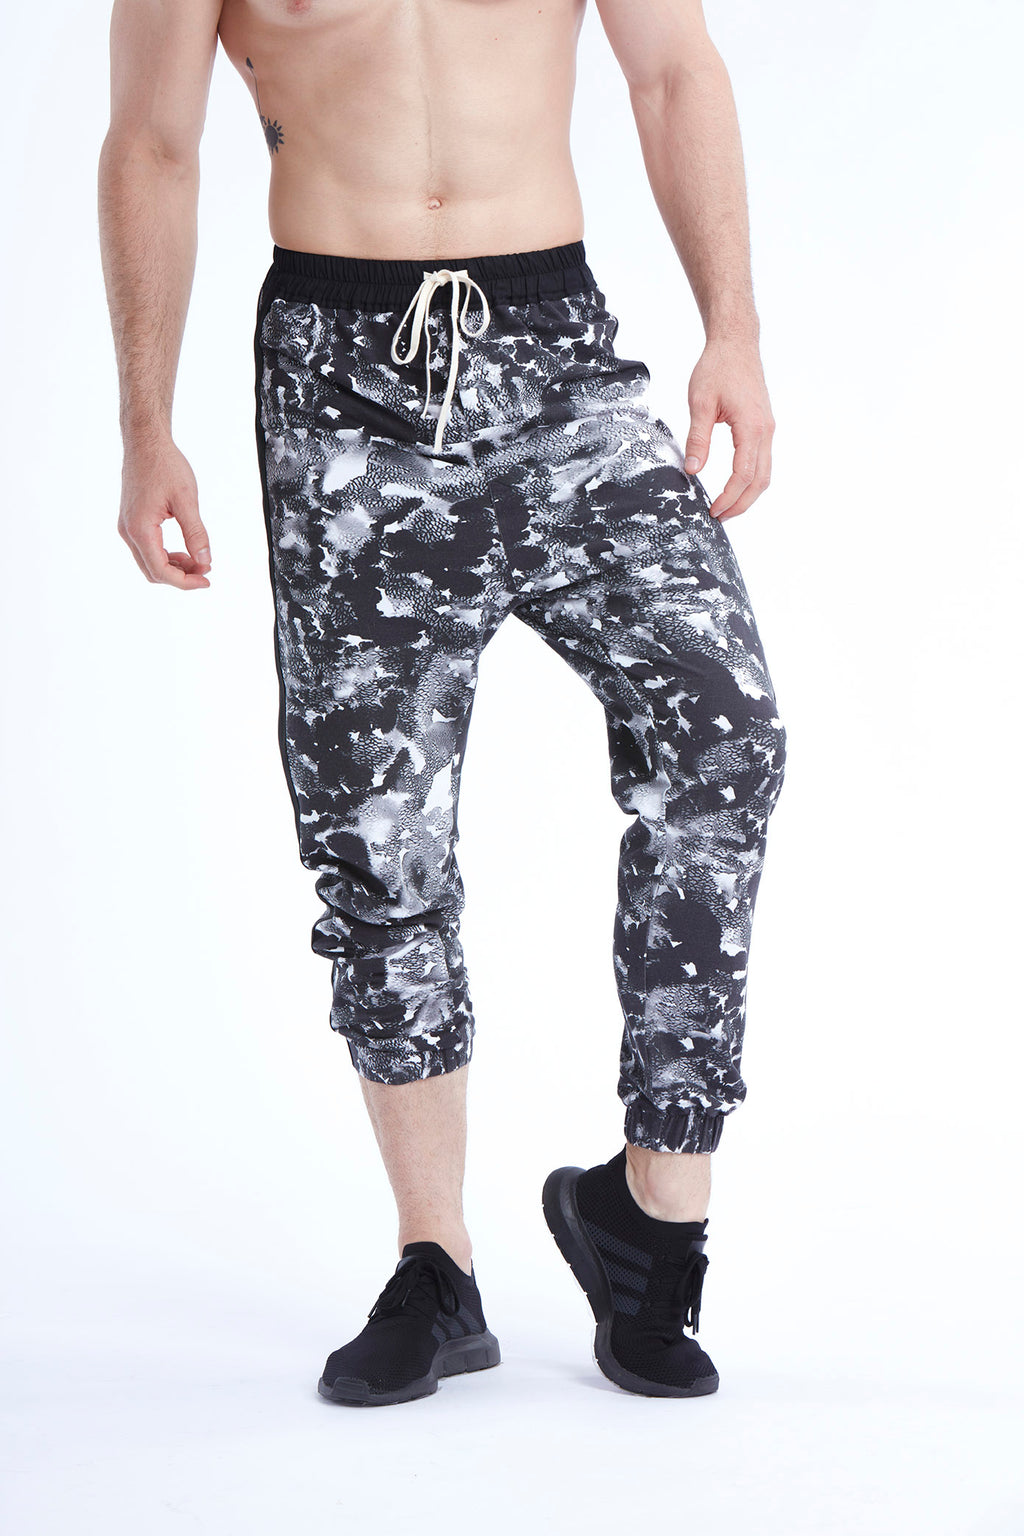 Be Strong Joggers - Black and White